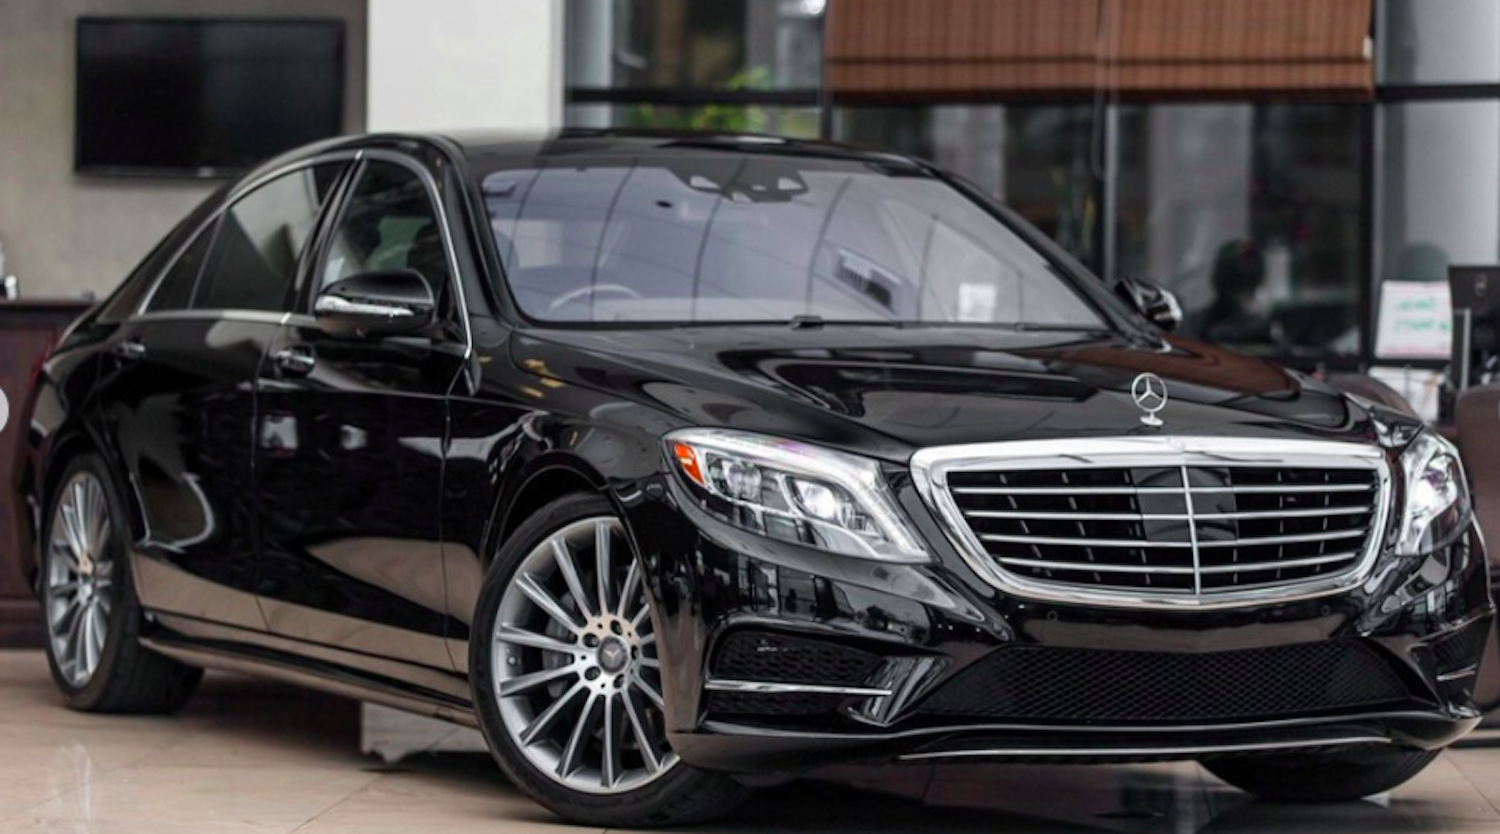 rent luxury Mercedes car S550 S Class From Exotic-Luxury-Rental.com